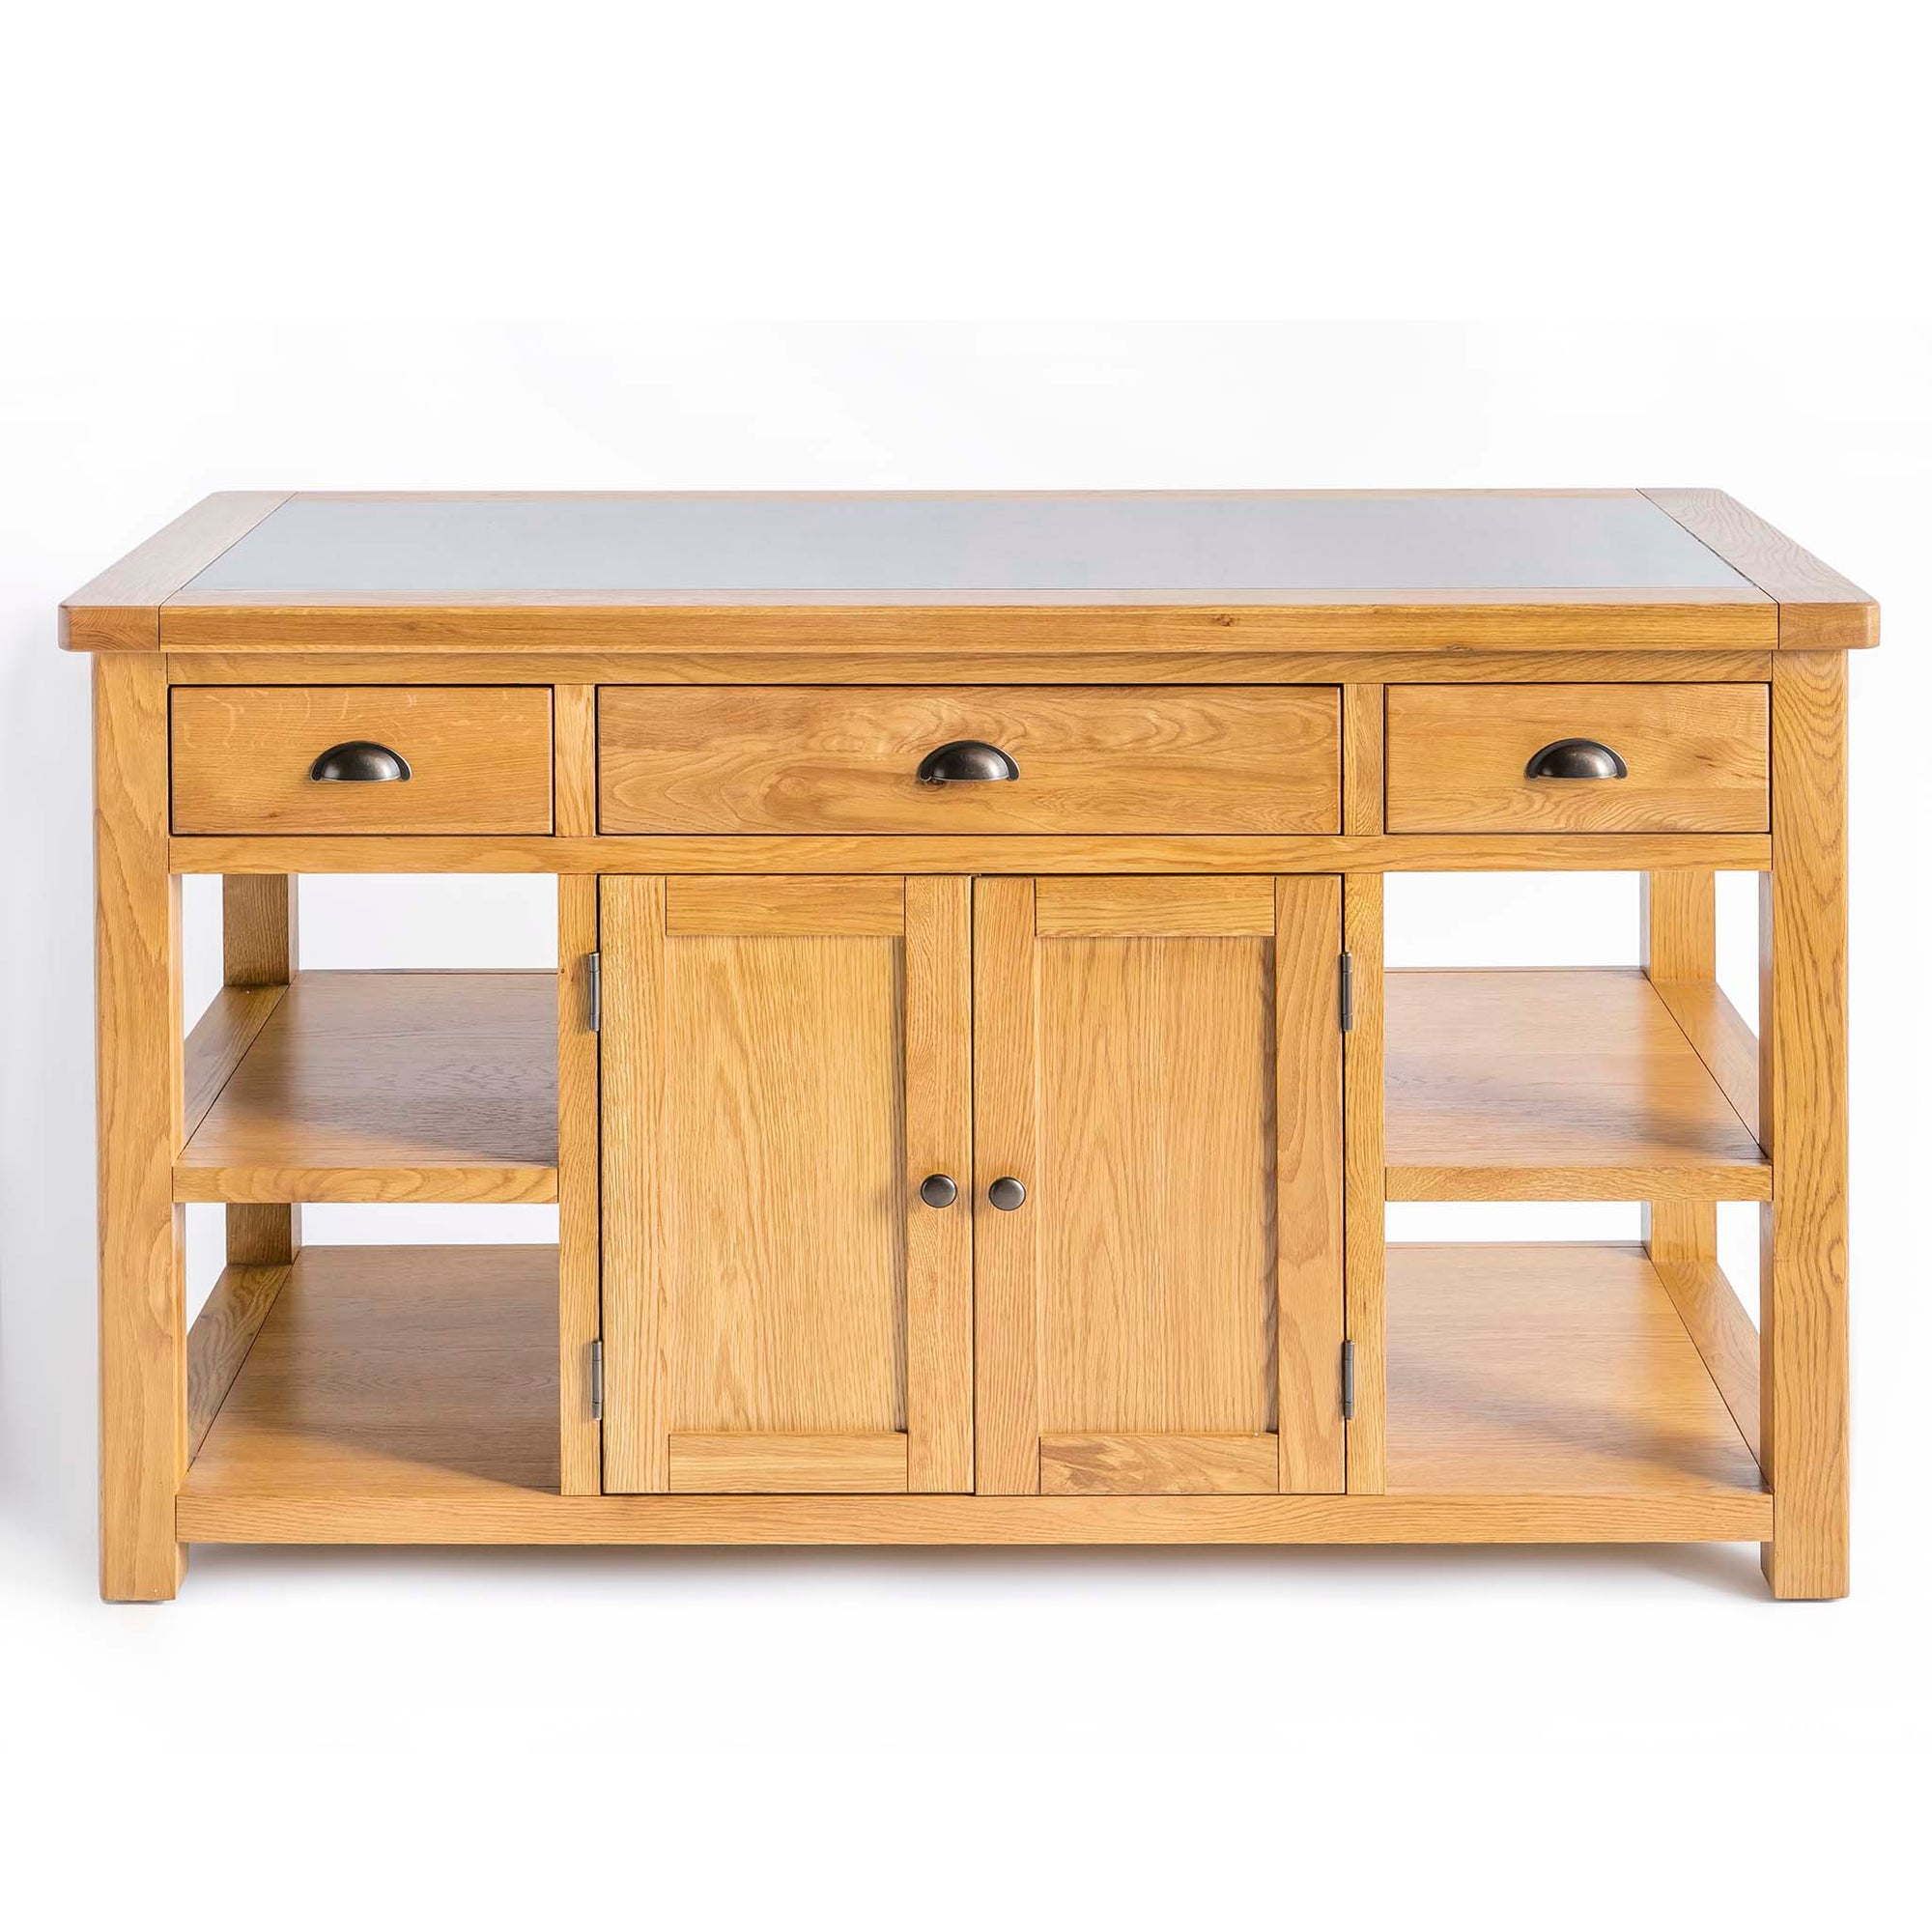 Roseland Oak Kitchen Island with Granite top by Roseland Furniture